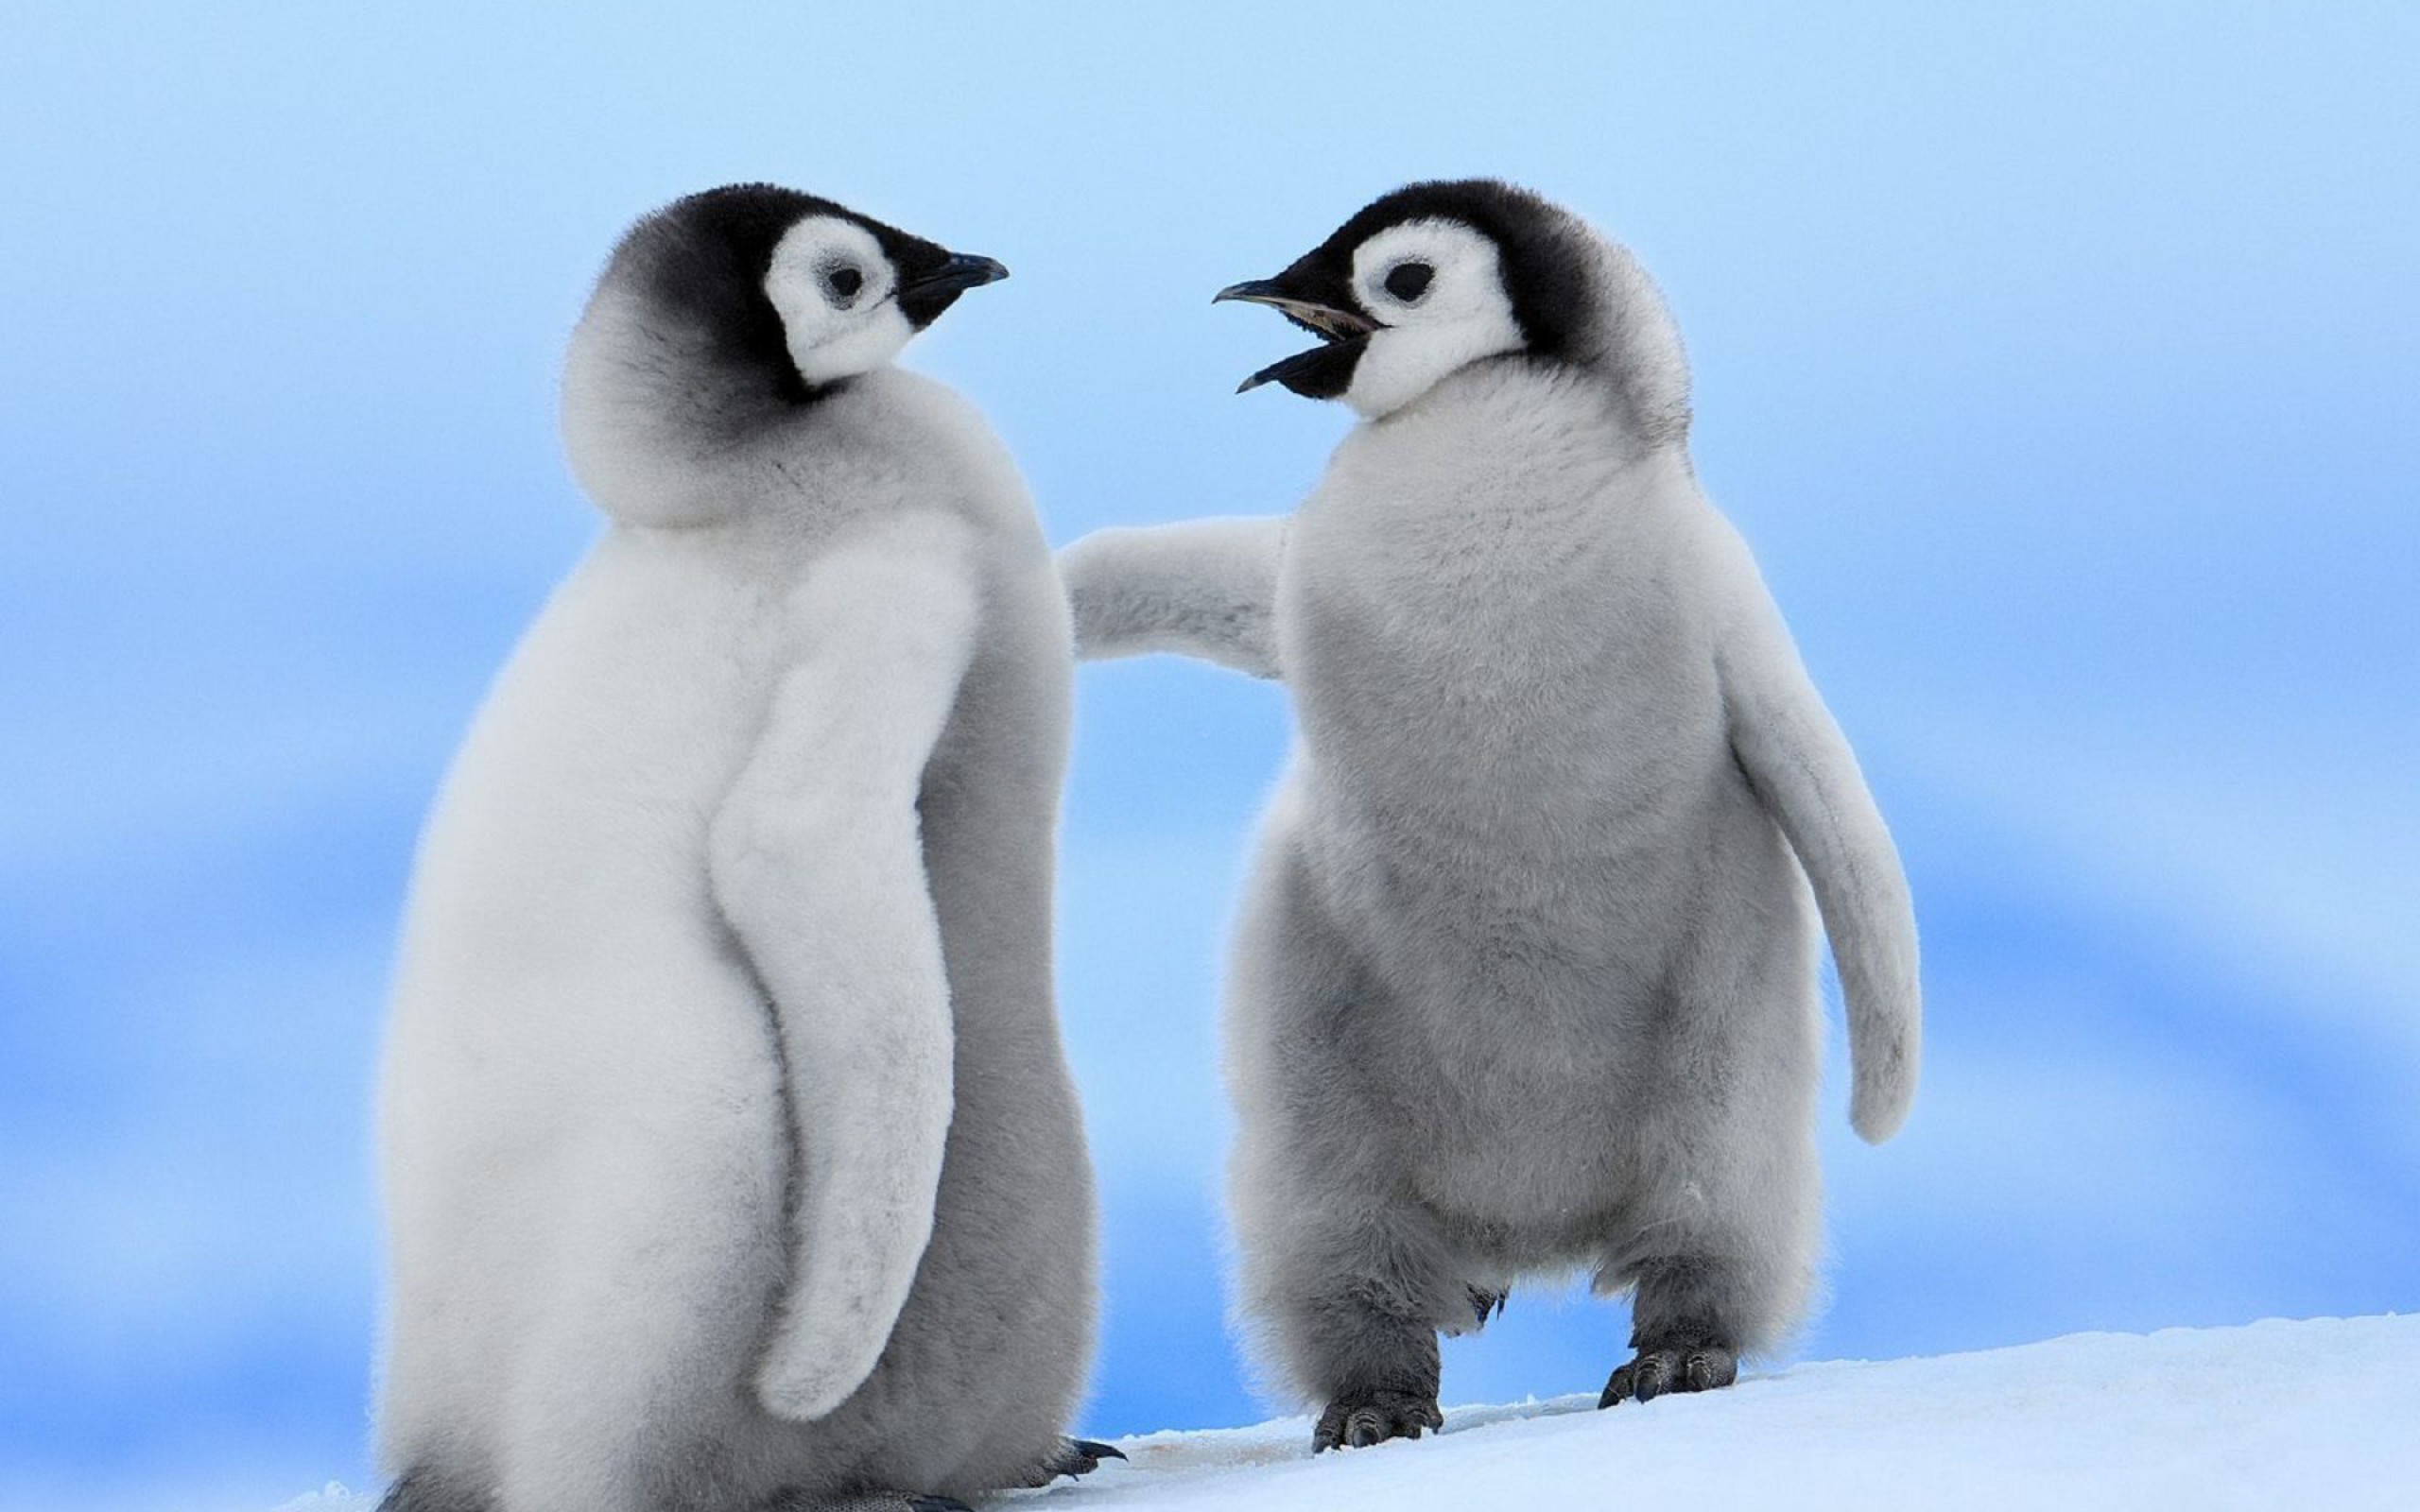 Hd Cute Animal Wallpapers 1080p Animals Birds Penguins Baby Animals Wallpapers Hd